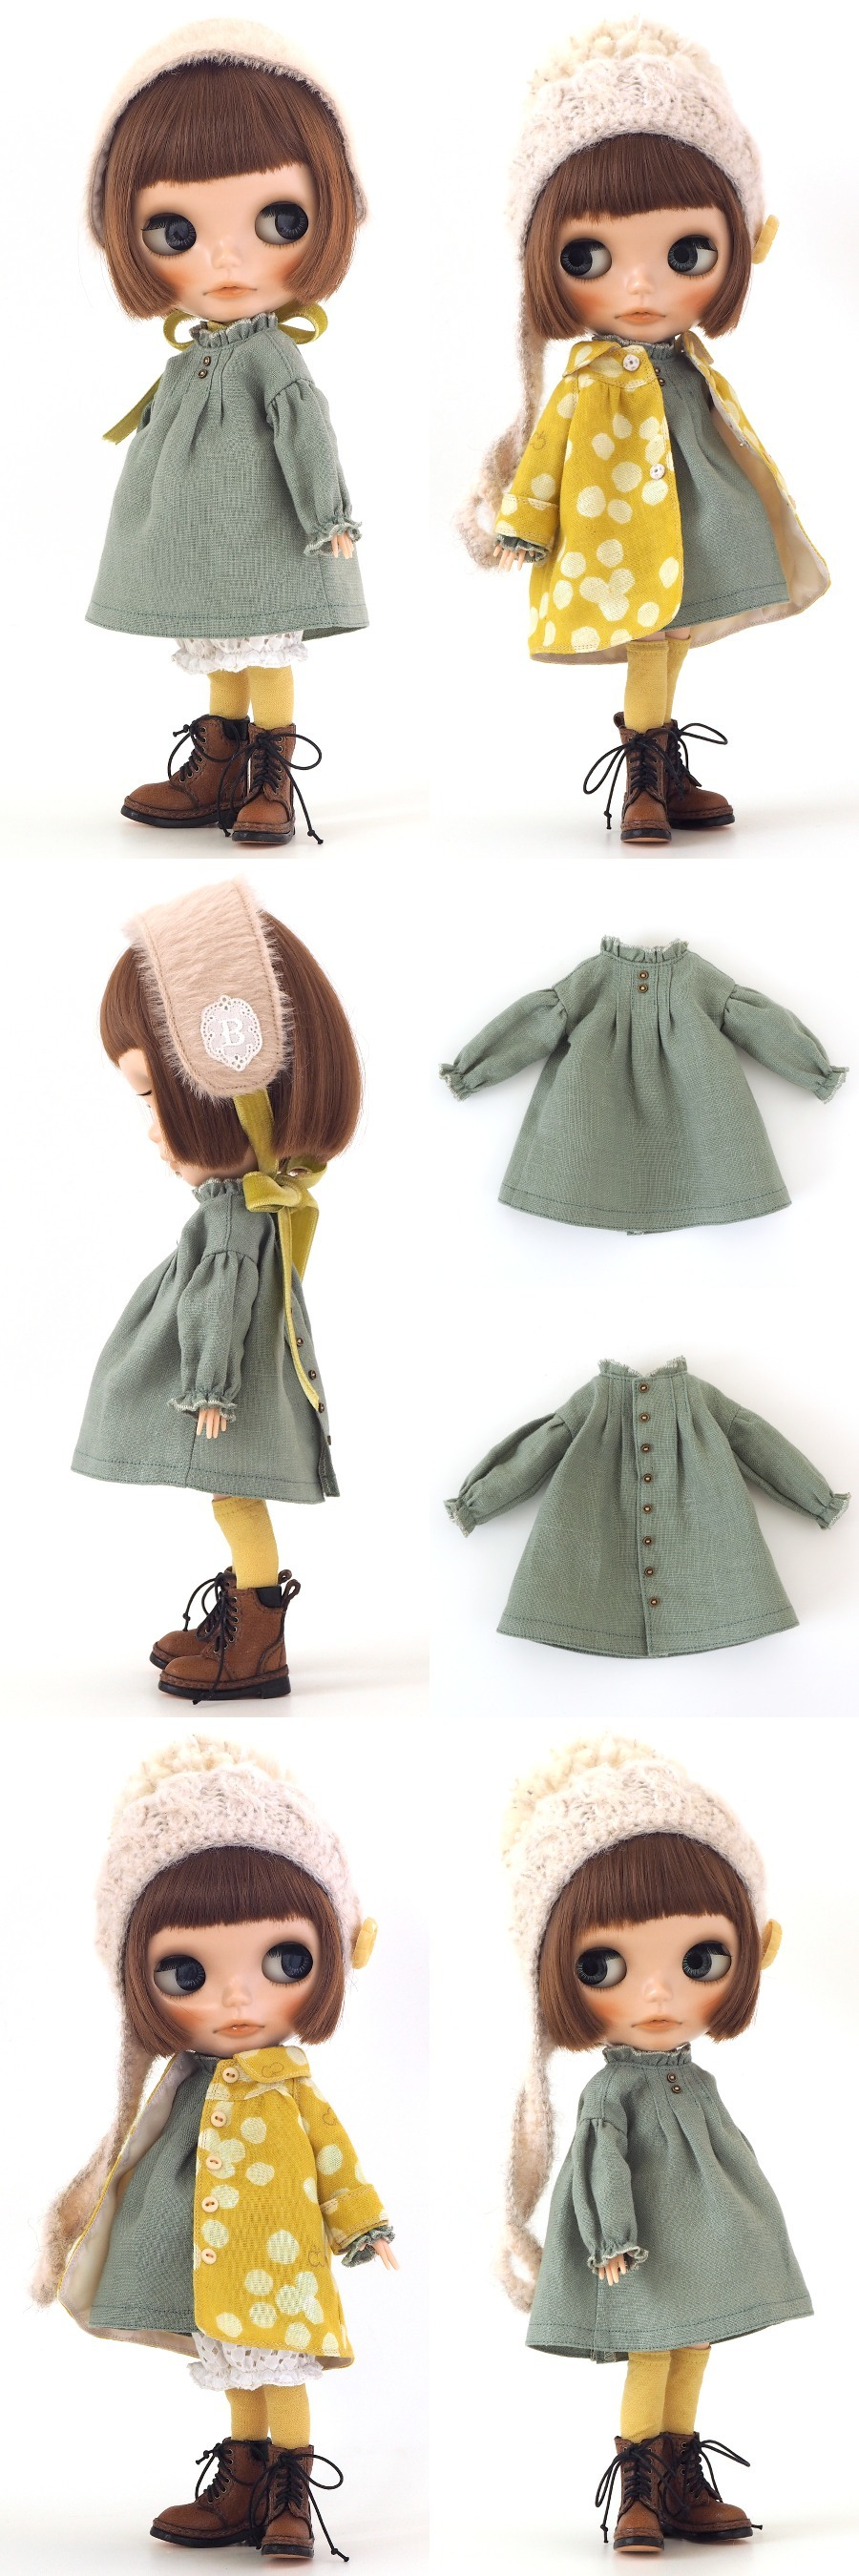 ** Blythe outfit ** Lucalily 526**_d0217189_11350781.jpg